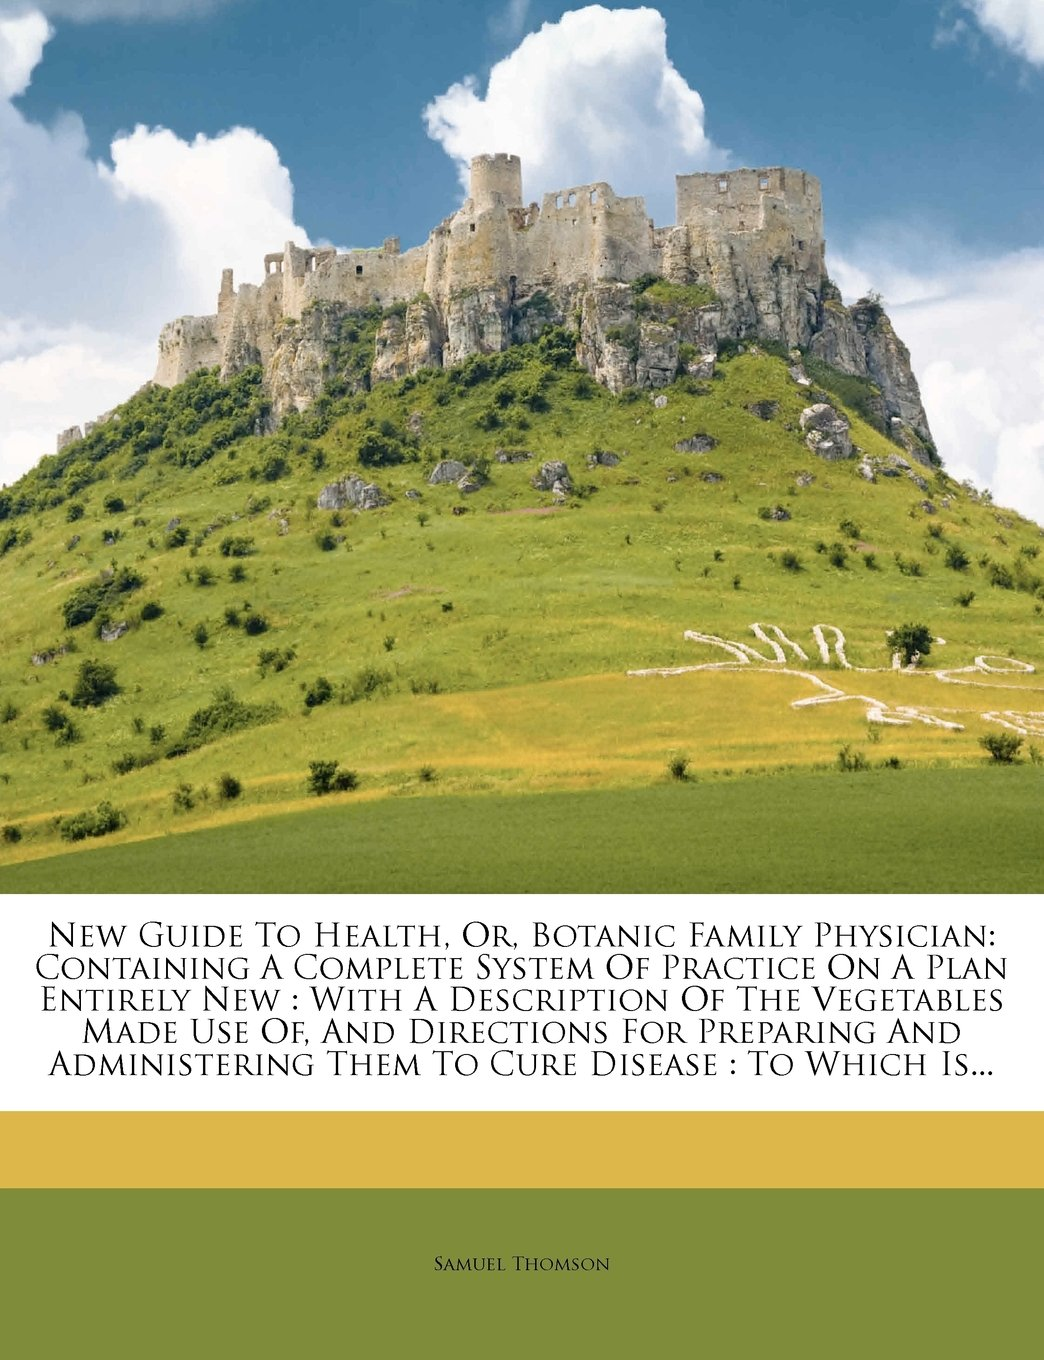 New Guide To Health, Or, Botanic Family Physician: Containing A Complete System Of Practice On A Plan Entirely New : With A Description Of The ... Them To Cure Disease : To Which Is... pdf